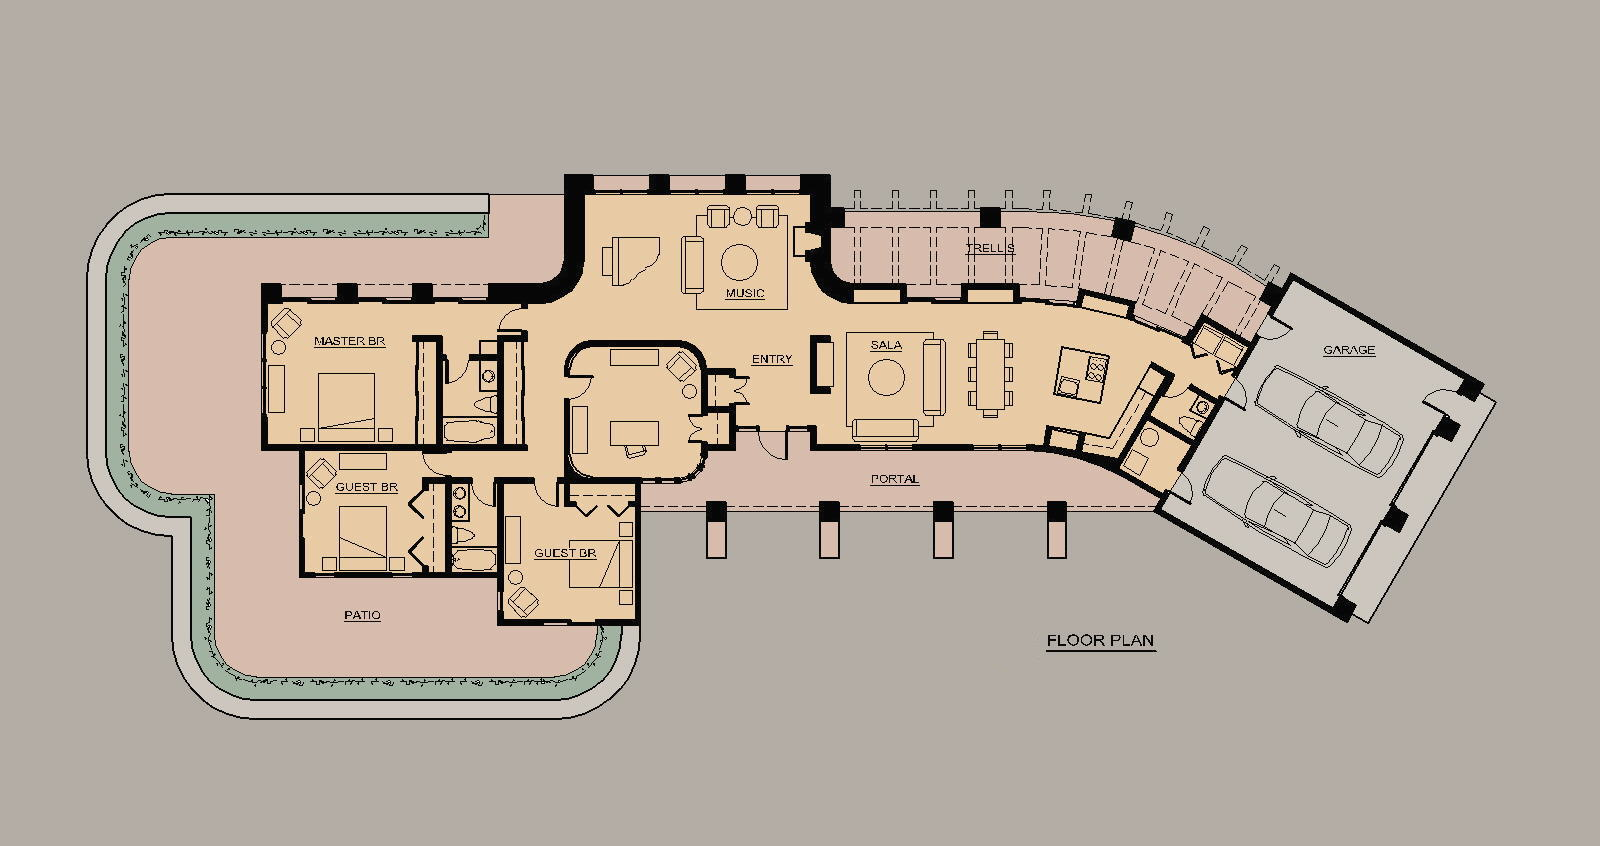 House drawing at getdrawings. Adobe clipart homes